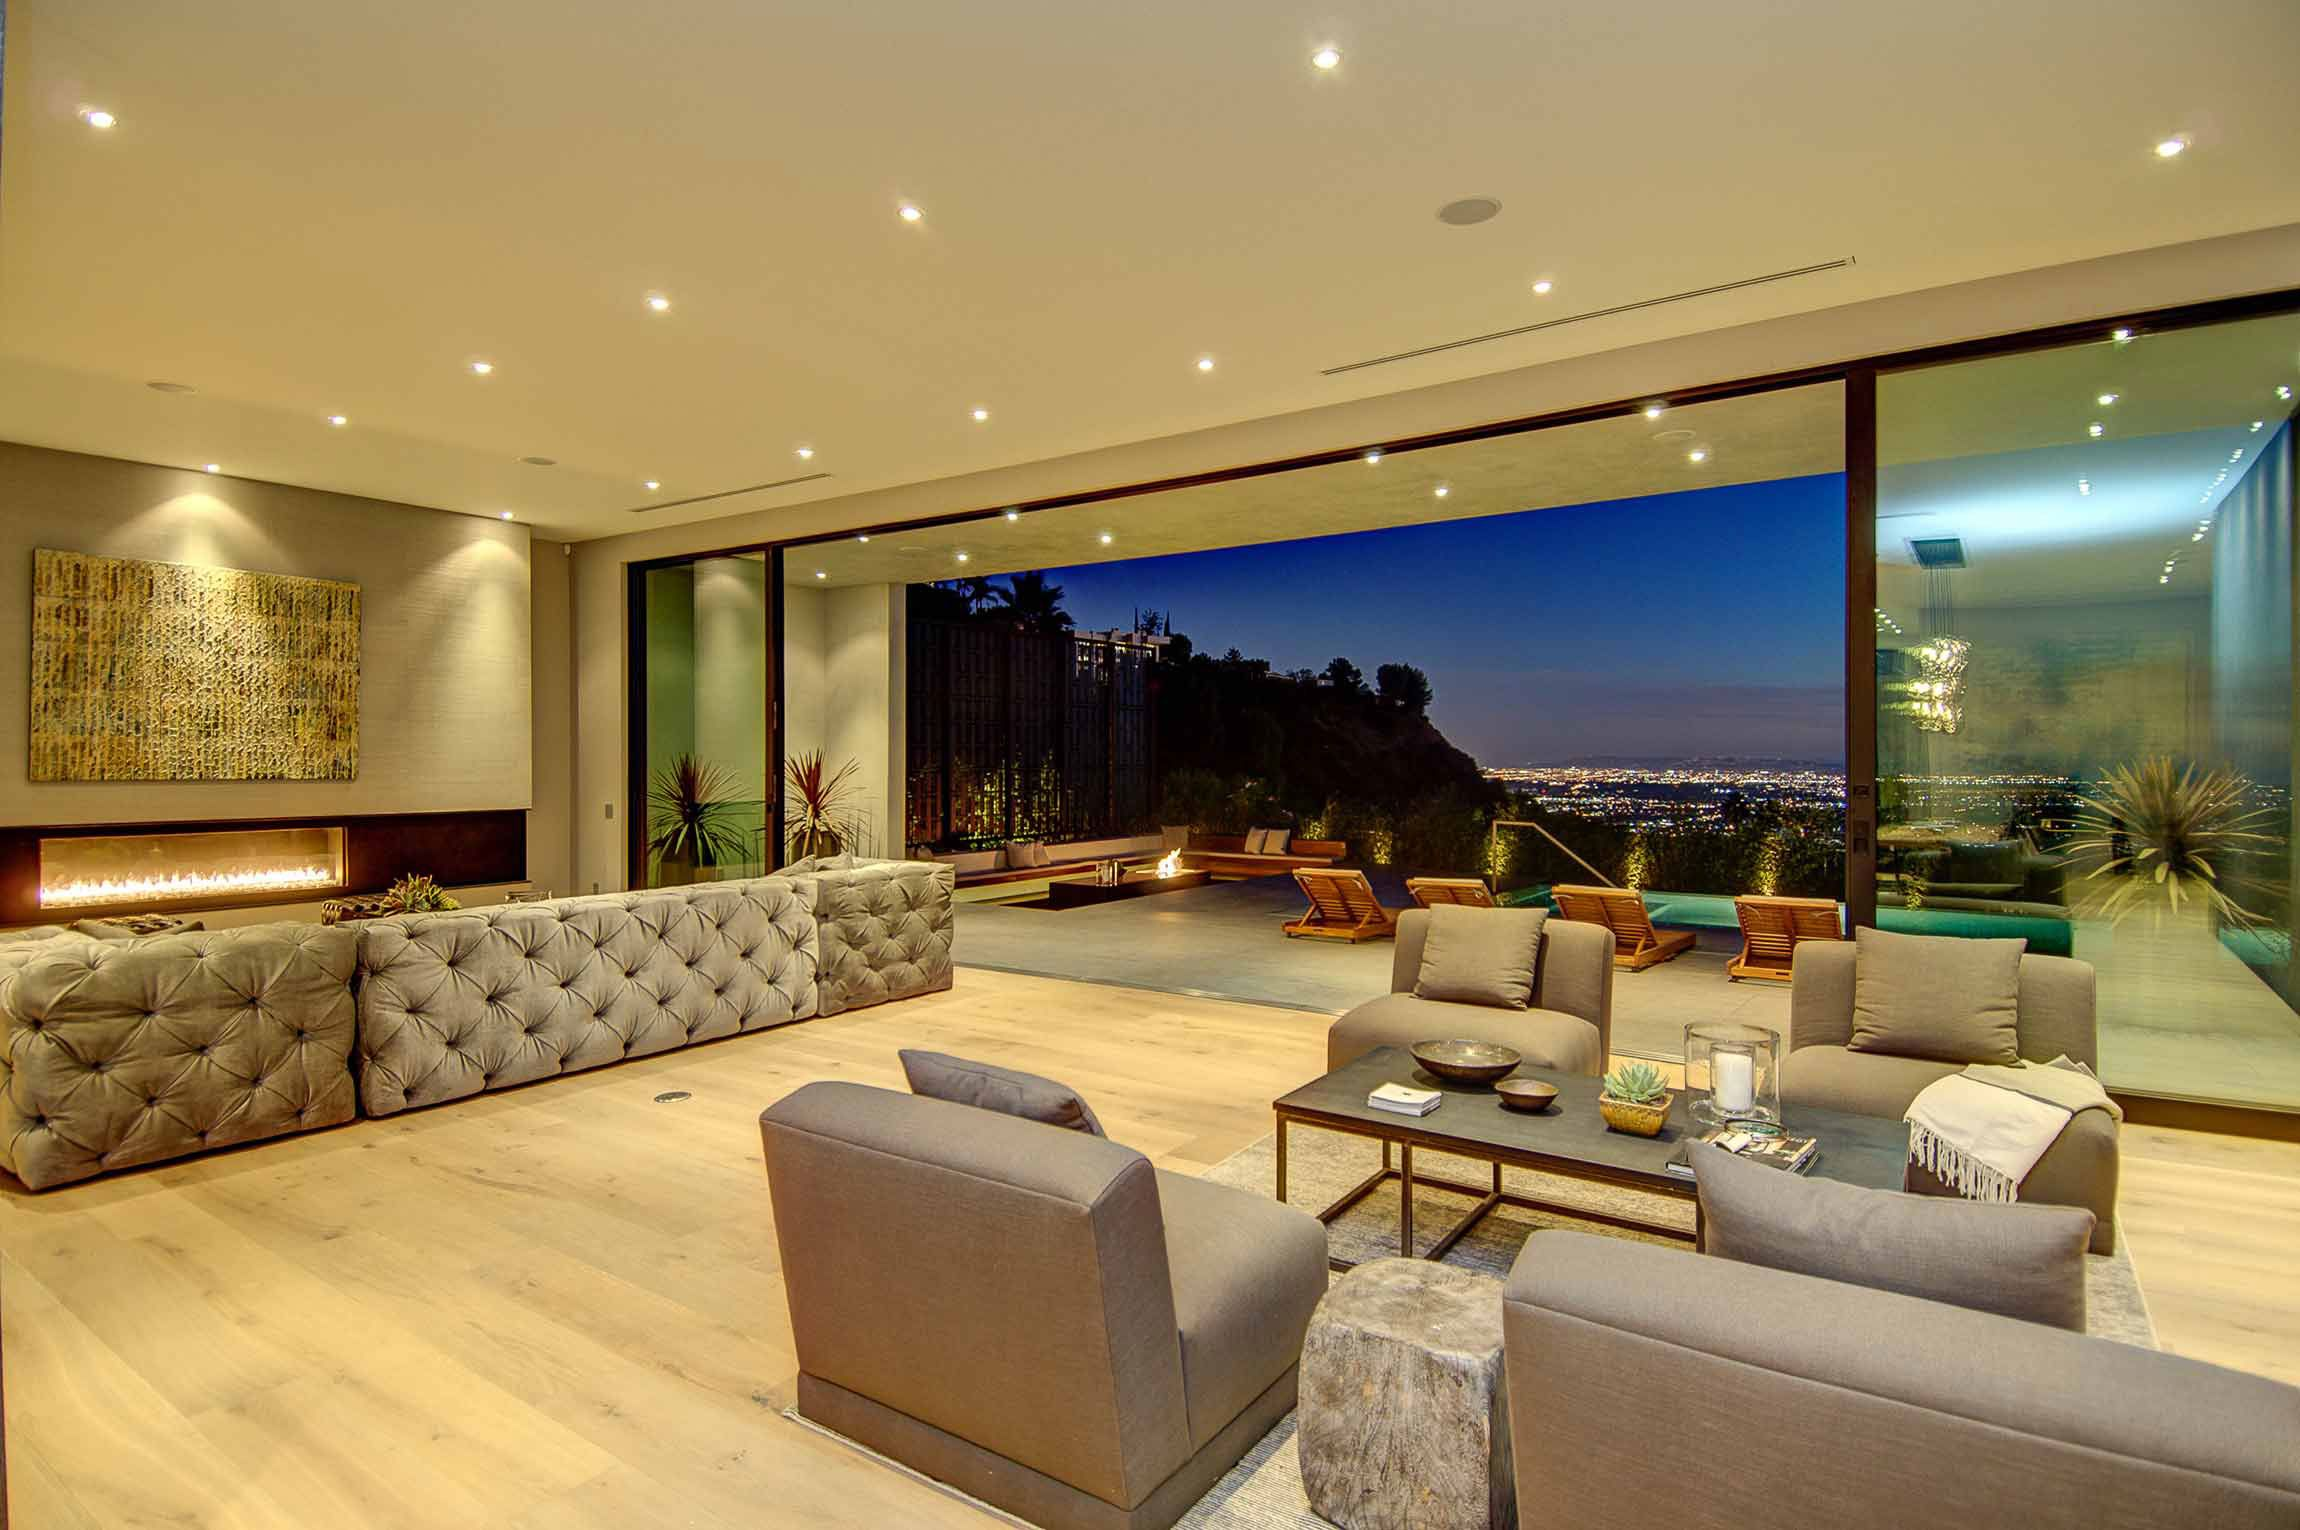 Private House With A Stylish Interior In L A And A Breathtaking View Over The City